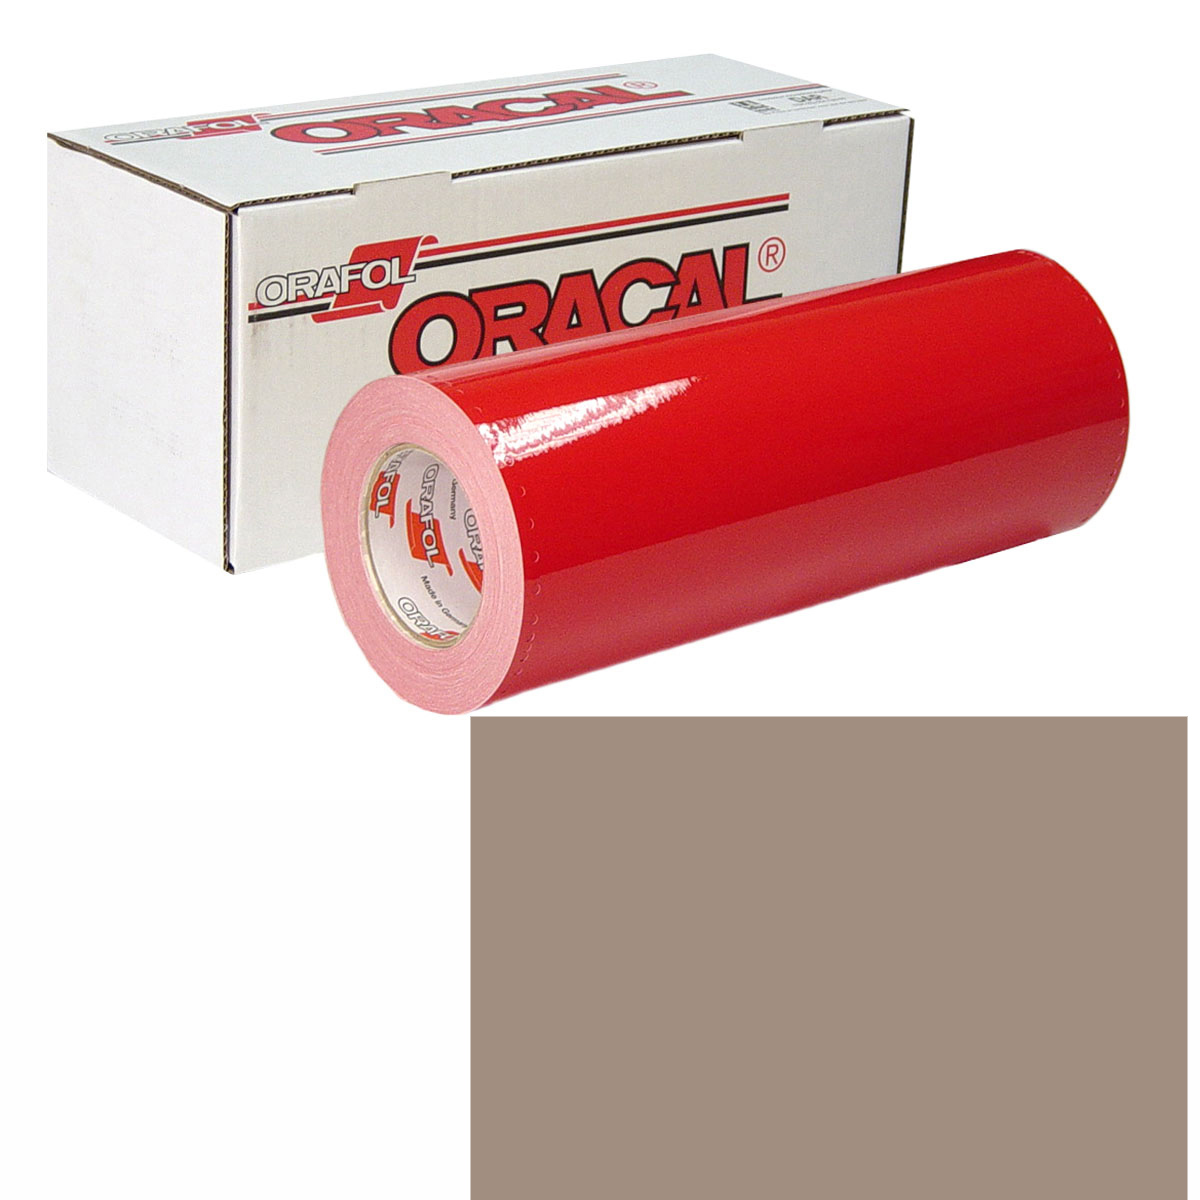 ORACAL 951M 30in X 10yd 923 Light Brown Met